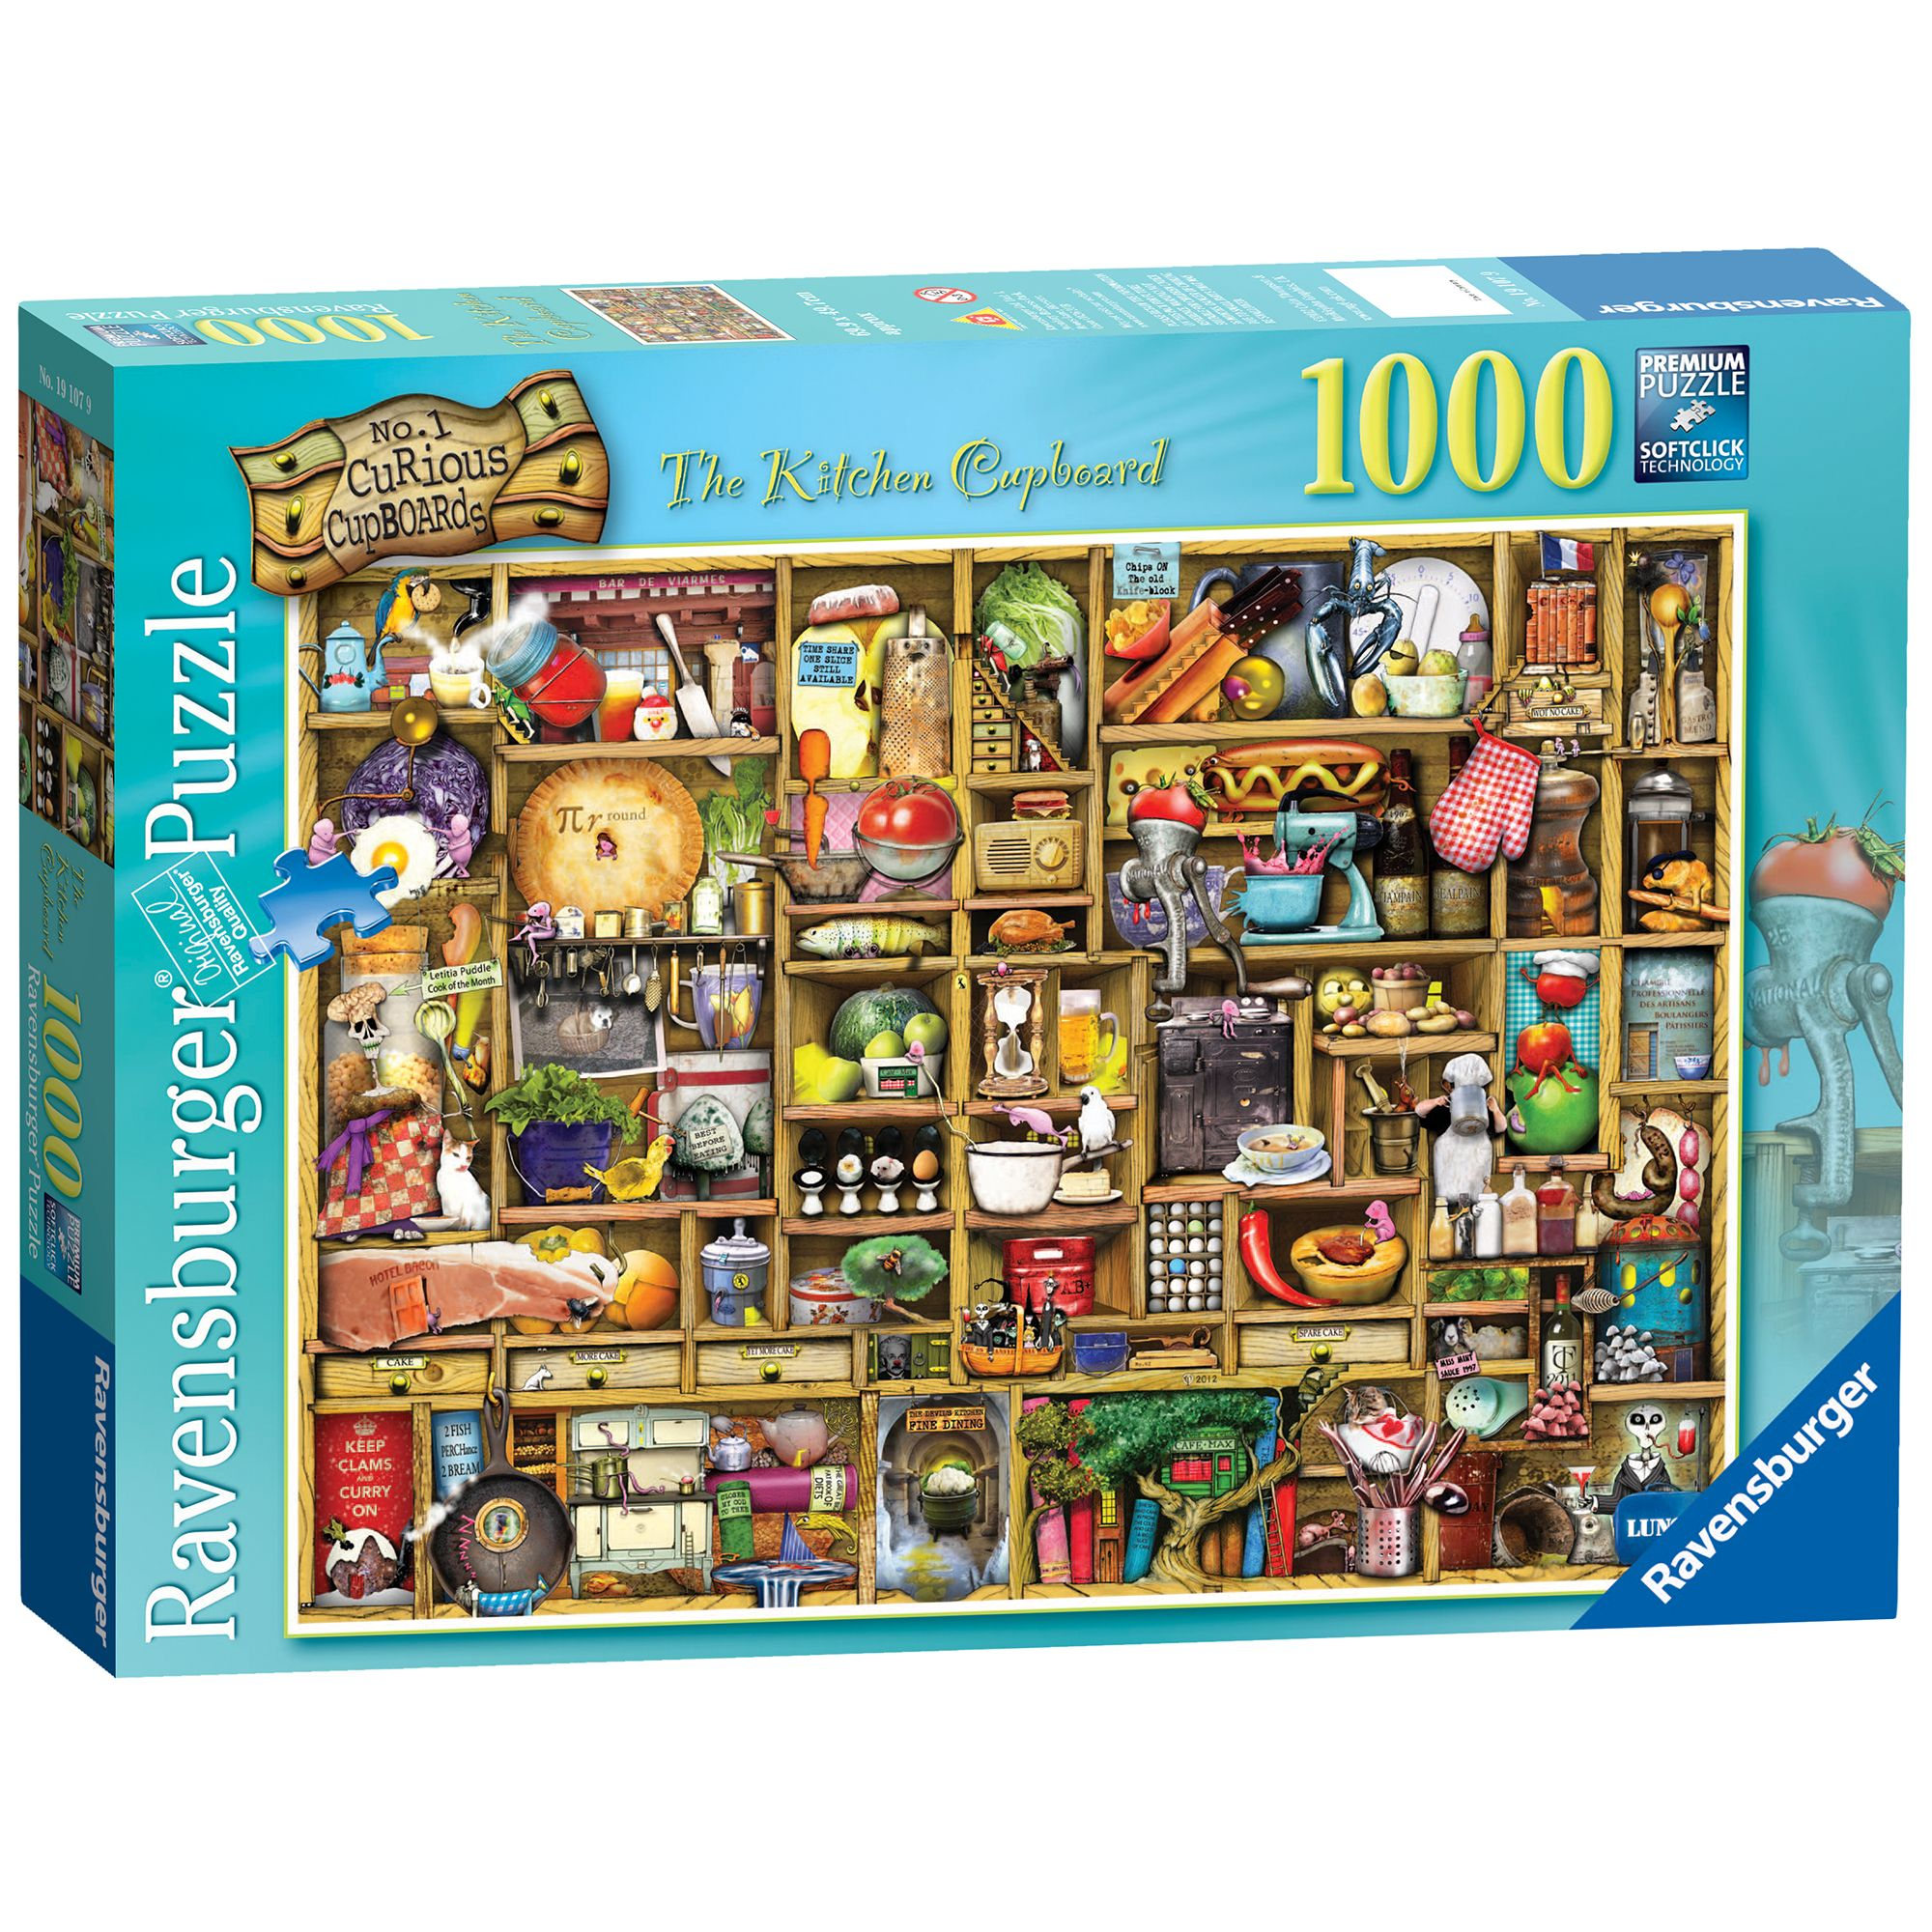 Image of Ravensburger The Curious Kitchen Cupboard 1000pc Puzzle